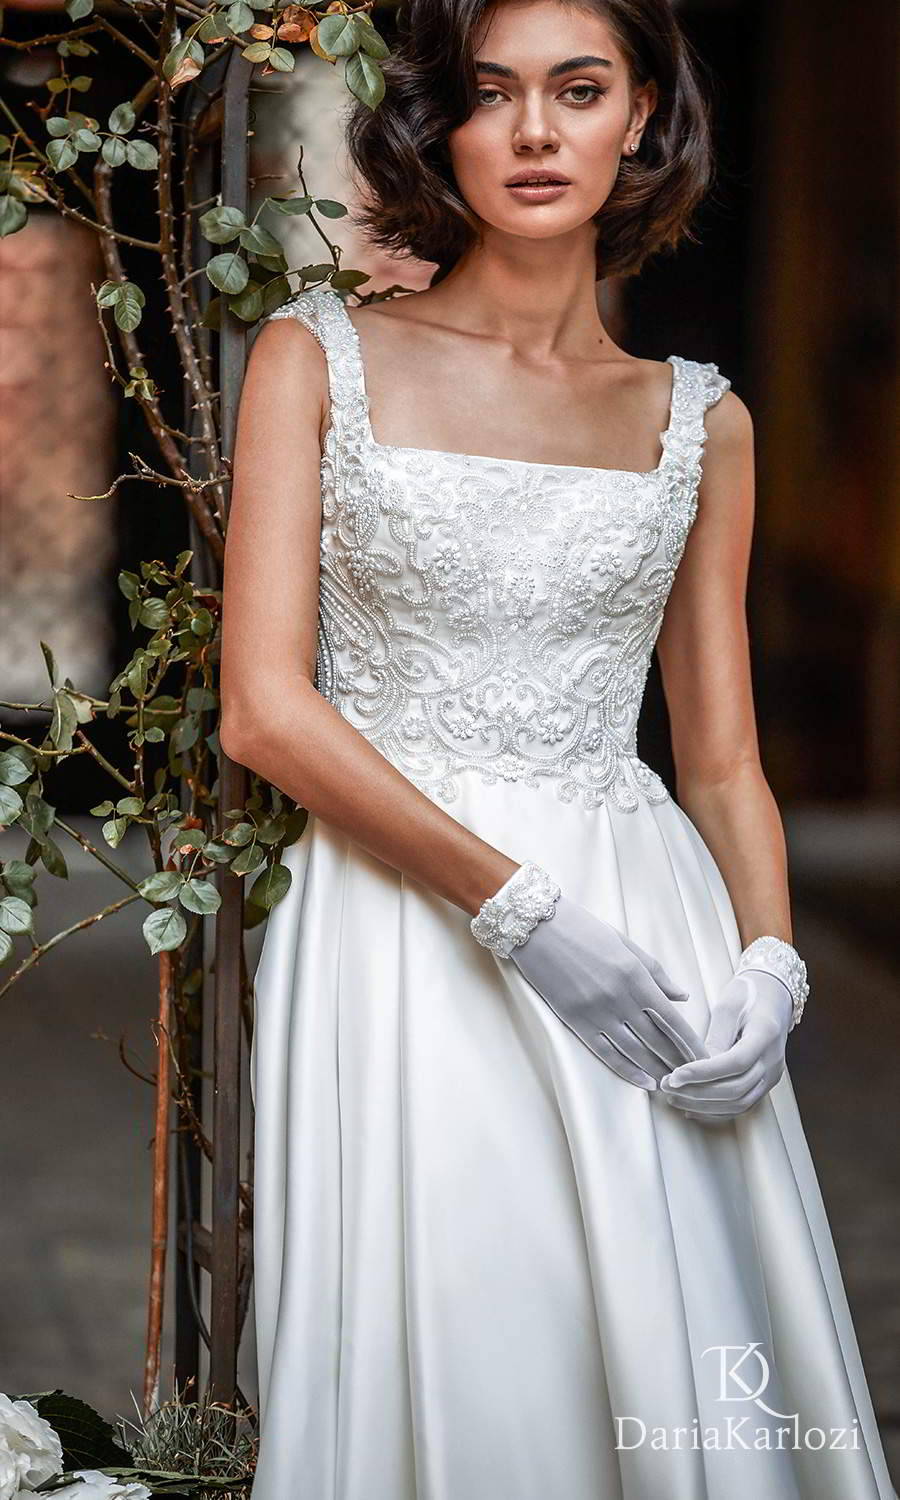 daria karlozi 2021 graceful dream bridal sleeveless thick straps square neckline heavily embellished bodice clean skirt a line ball gown wedding dress chapel train (first love) zv